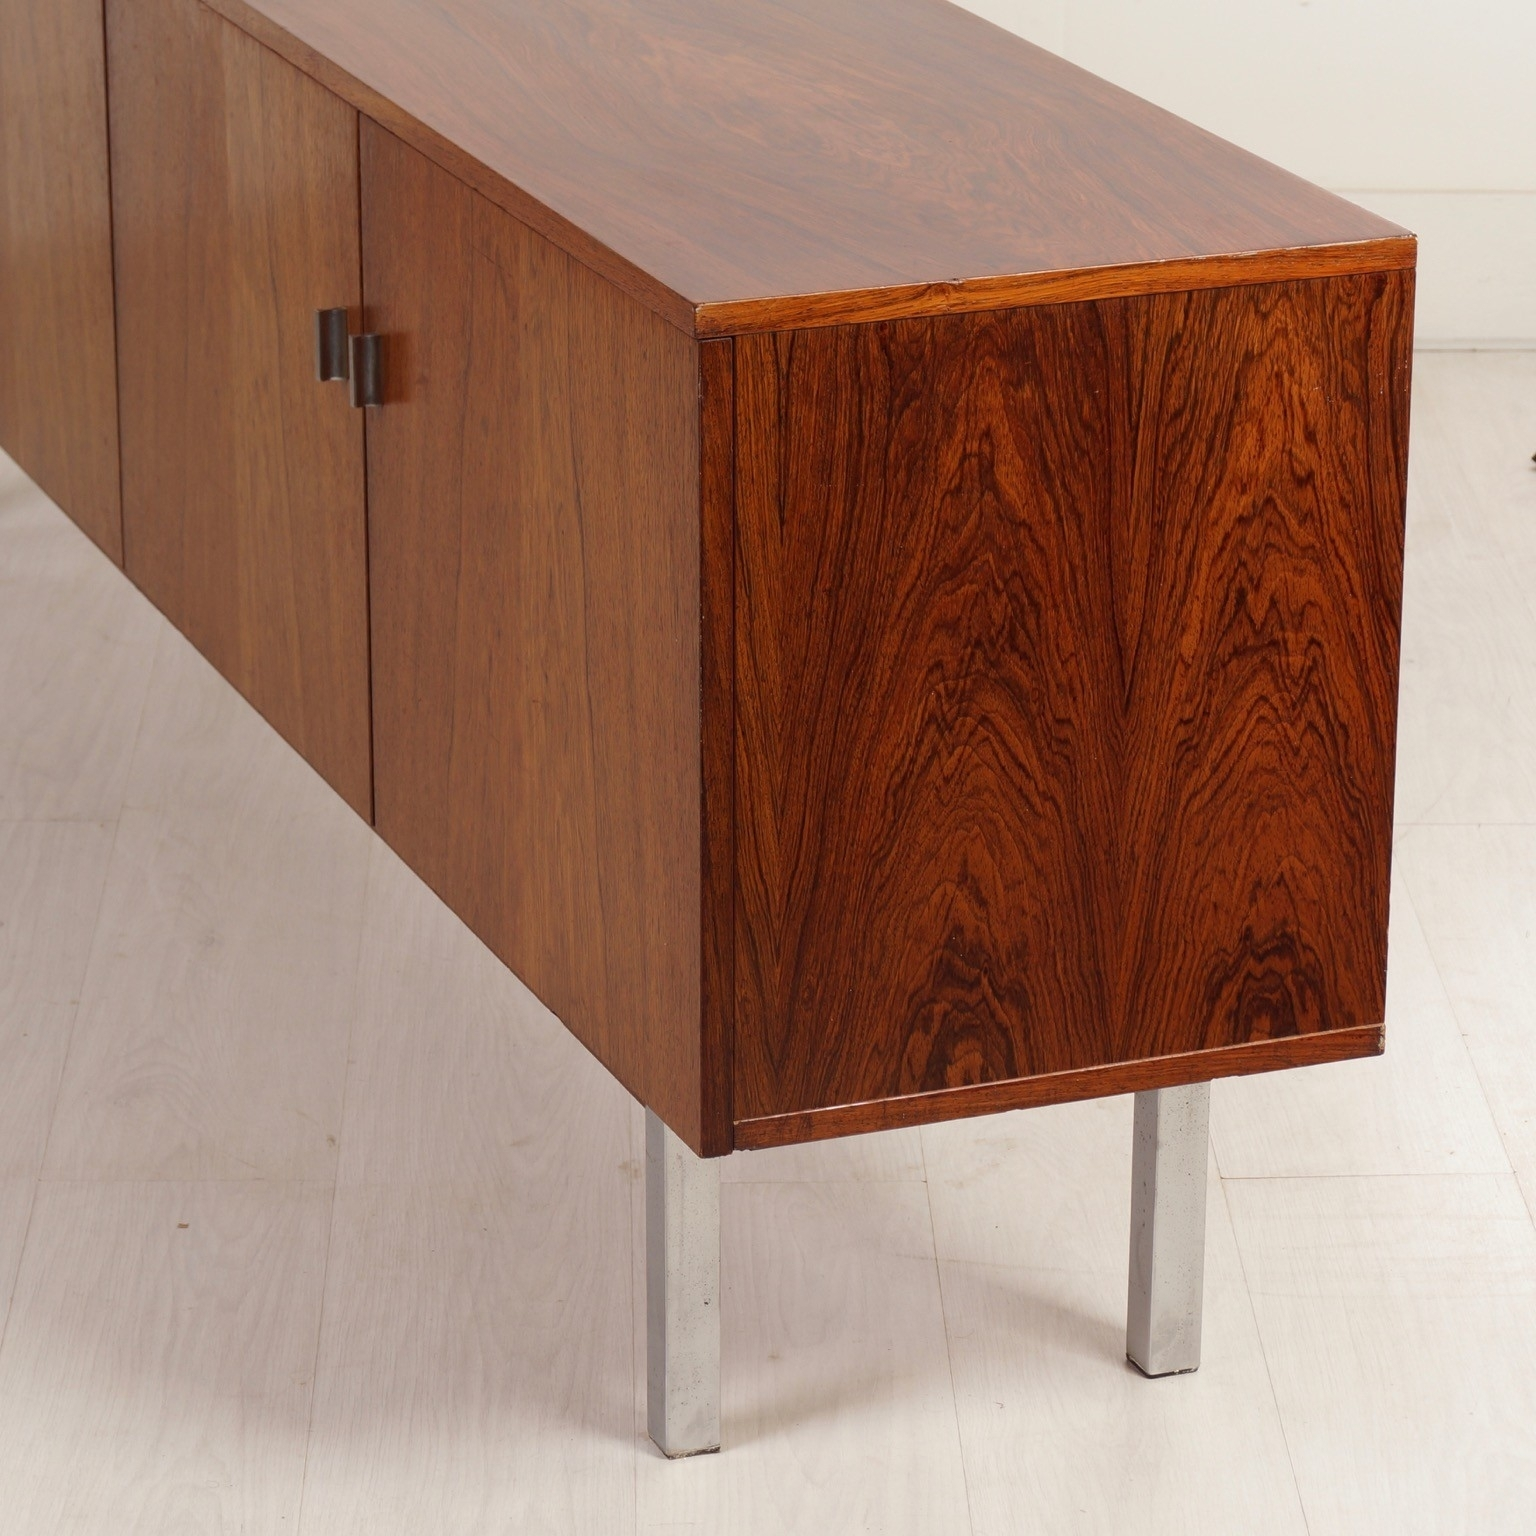 Vintage Sideboard Made Of Rosewood, 1960S - Ztijl Design in Vintage Brown Textured Sideboards (Image 24 of 30)